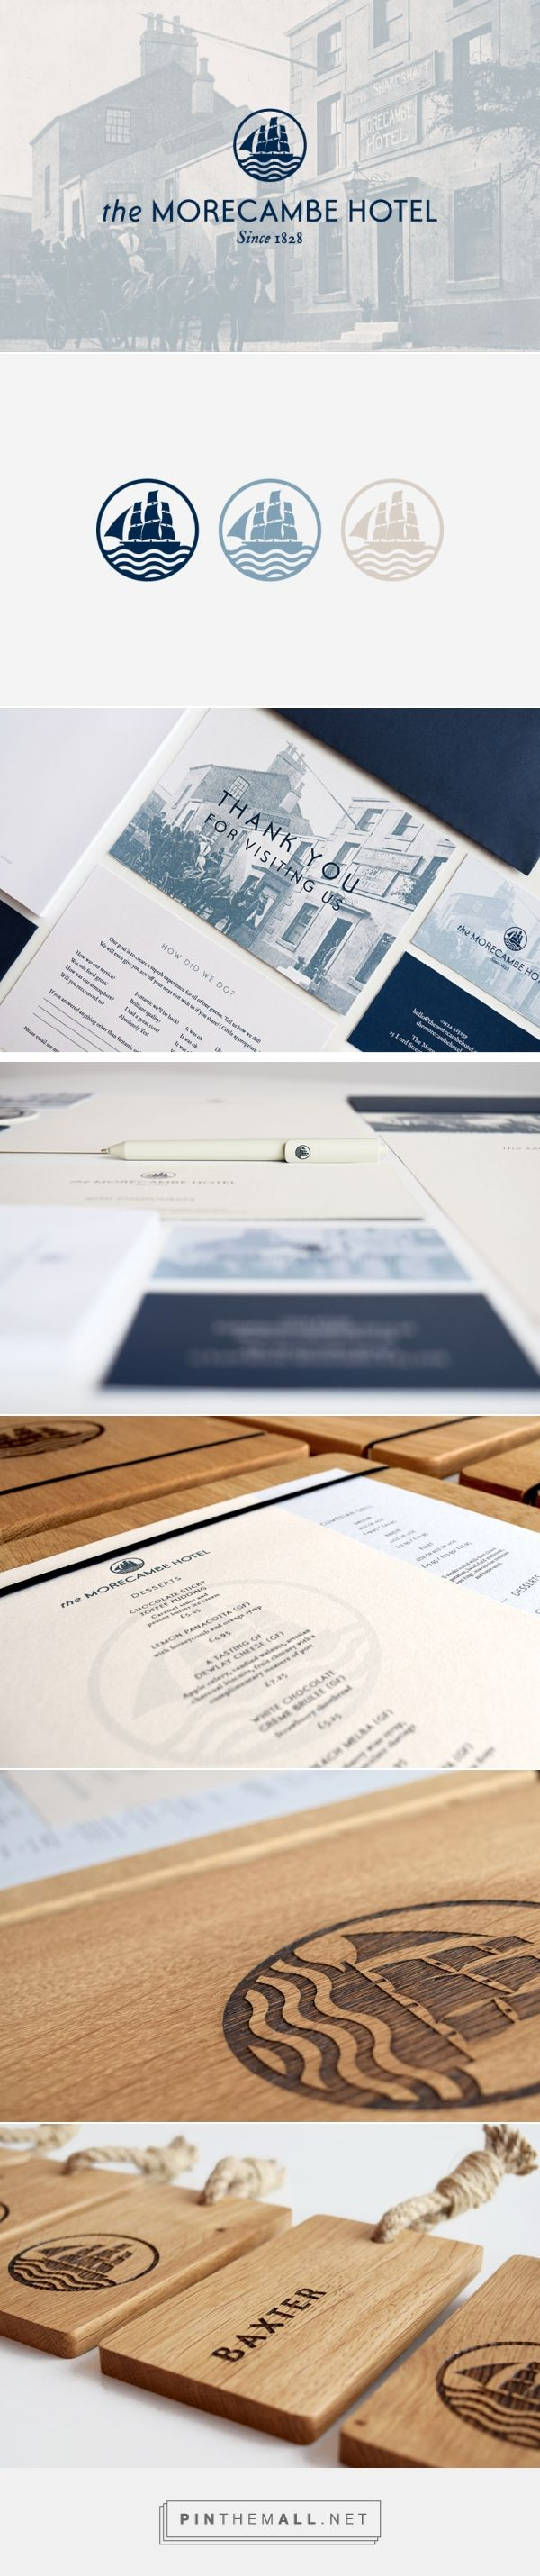 The Morecambe Hotel Branding - The Design Attic - created via https://pinthemall.net